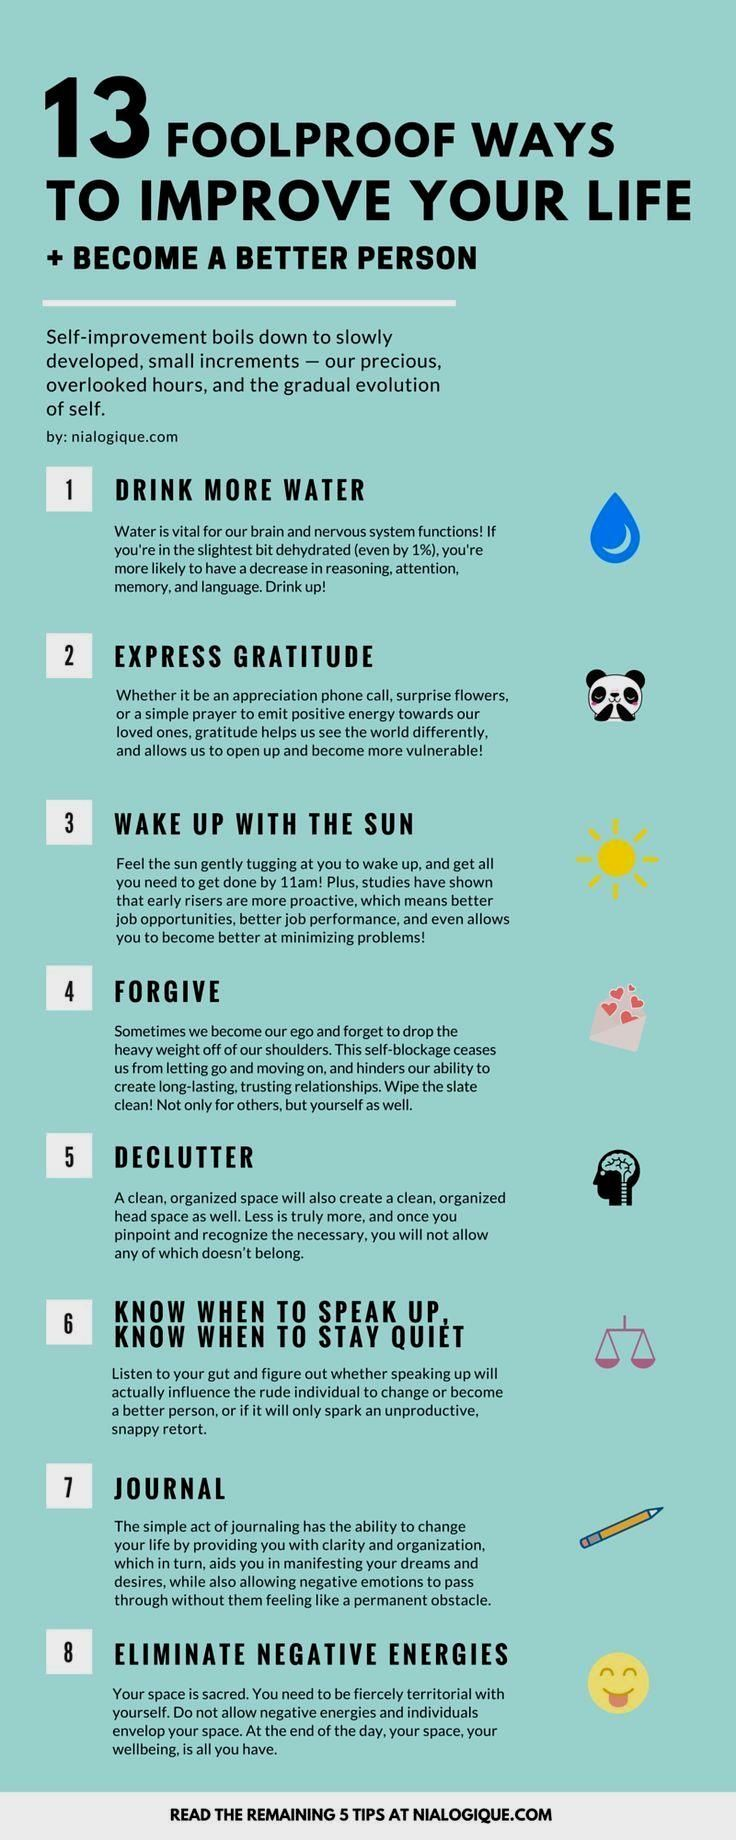 13 ways to improve your life